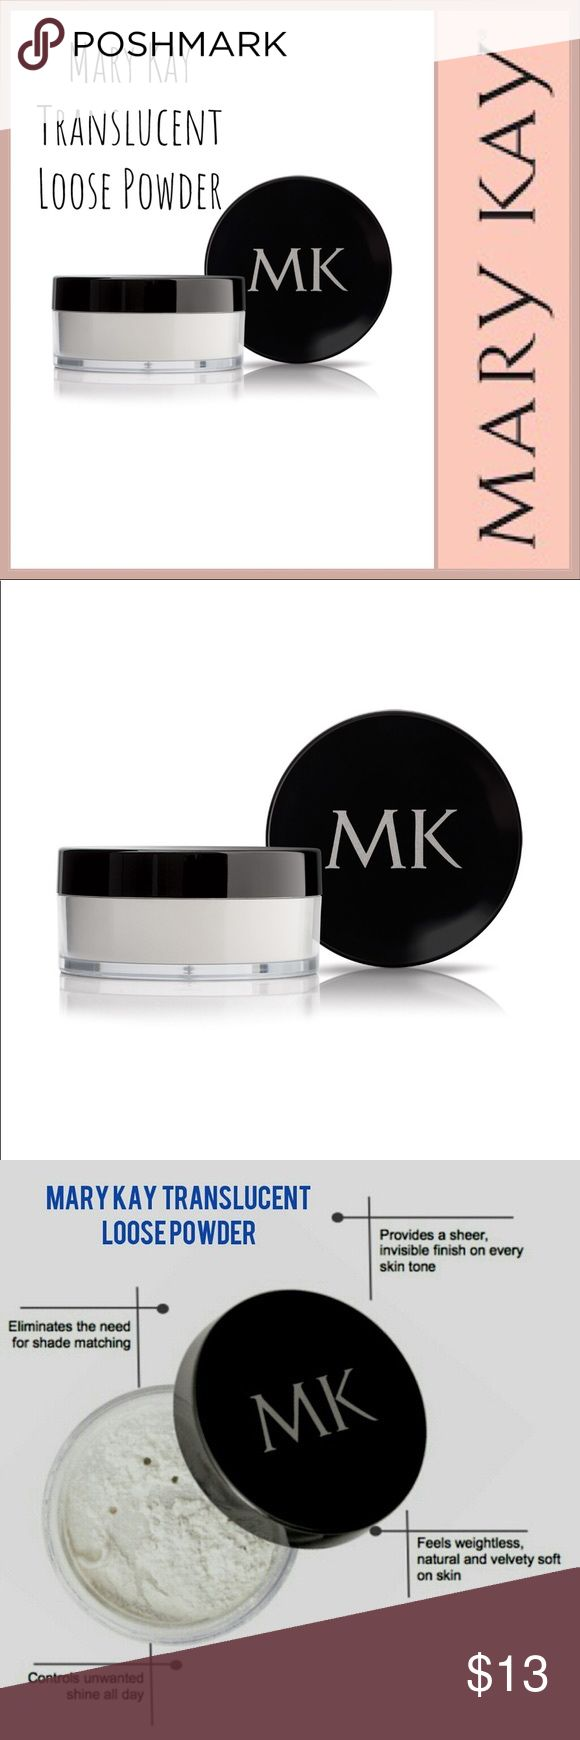 🆕 Mary Kay Translucent Loose Powder 🆕 Mary Kay Translucent Loose Powder ▪️Translucent. Sheer. It's every woman's perfect shade ▪️Universal powder eliminates the need for shade matching ▪️Feels weightless, natural and velvety soft on skin ▪️Controls unwanted shine all day ▪️Provides a sheer, invisible finish on every skin tone to set foundation ▪️All-new formula contains light-scattering properties designed to help soften the appearance of imperfections for a skin-perfecting finish ▪️NOTE…